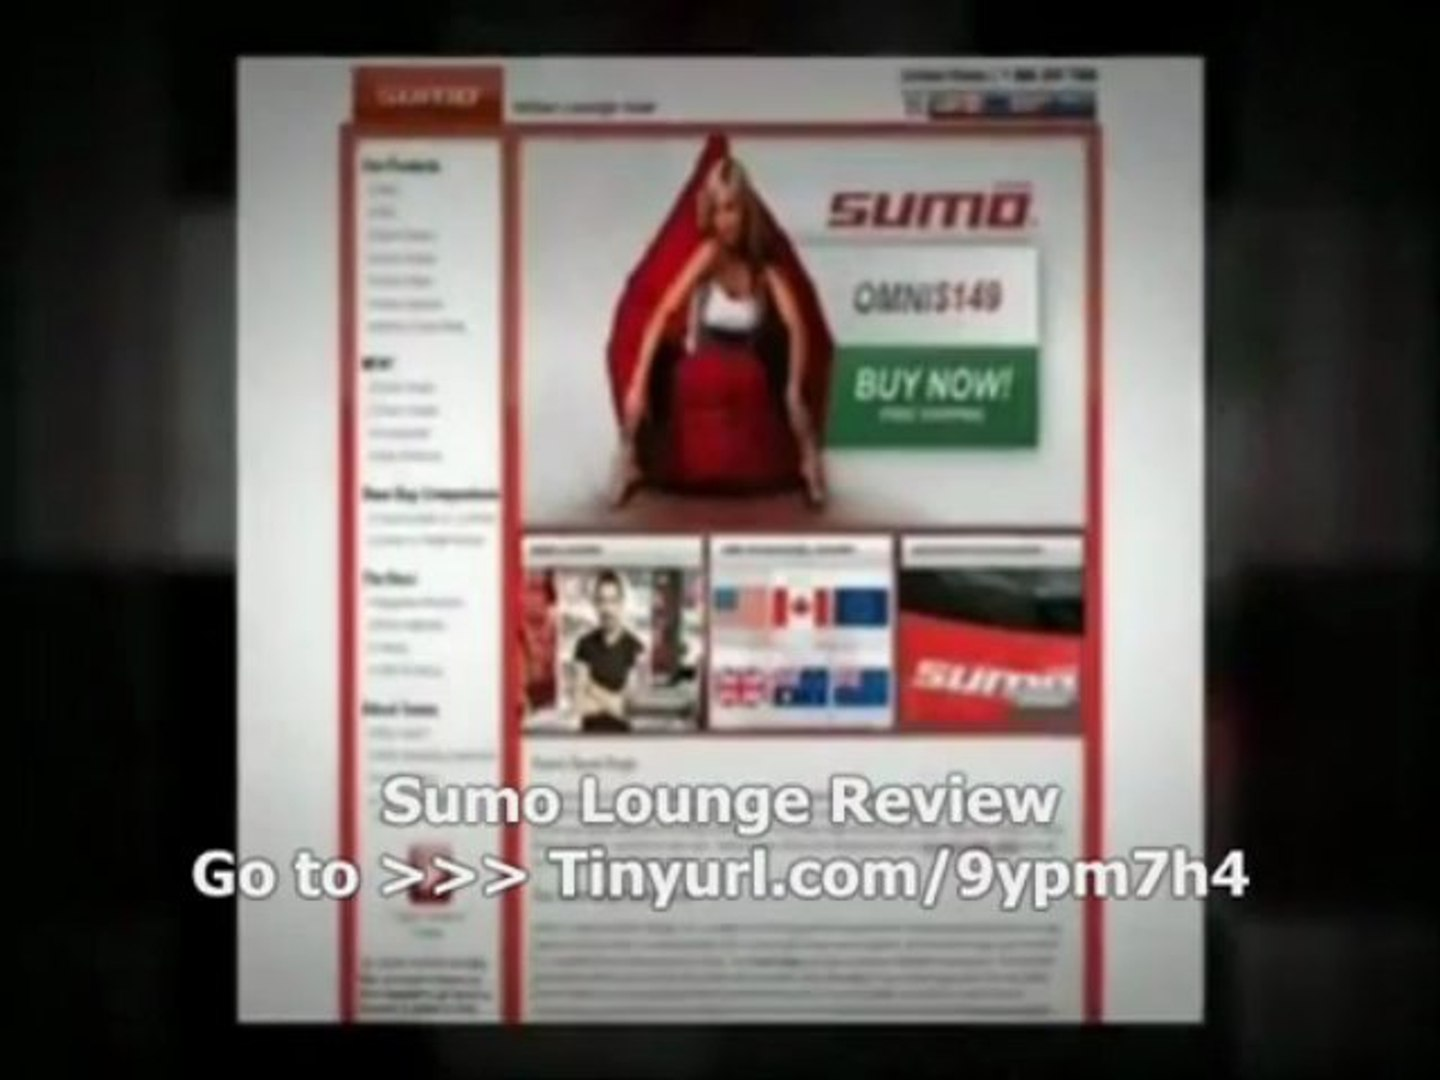 Sumo Lounge Review | Promo Code Sumo Lounge Review